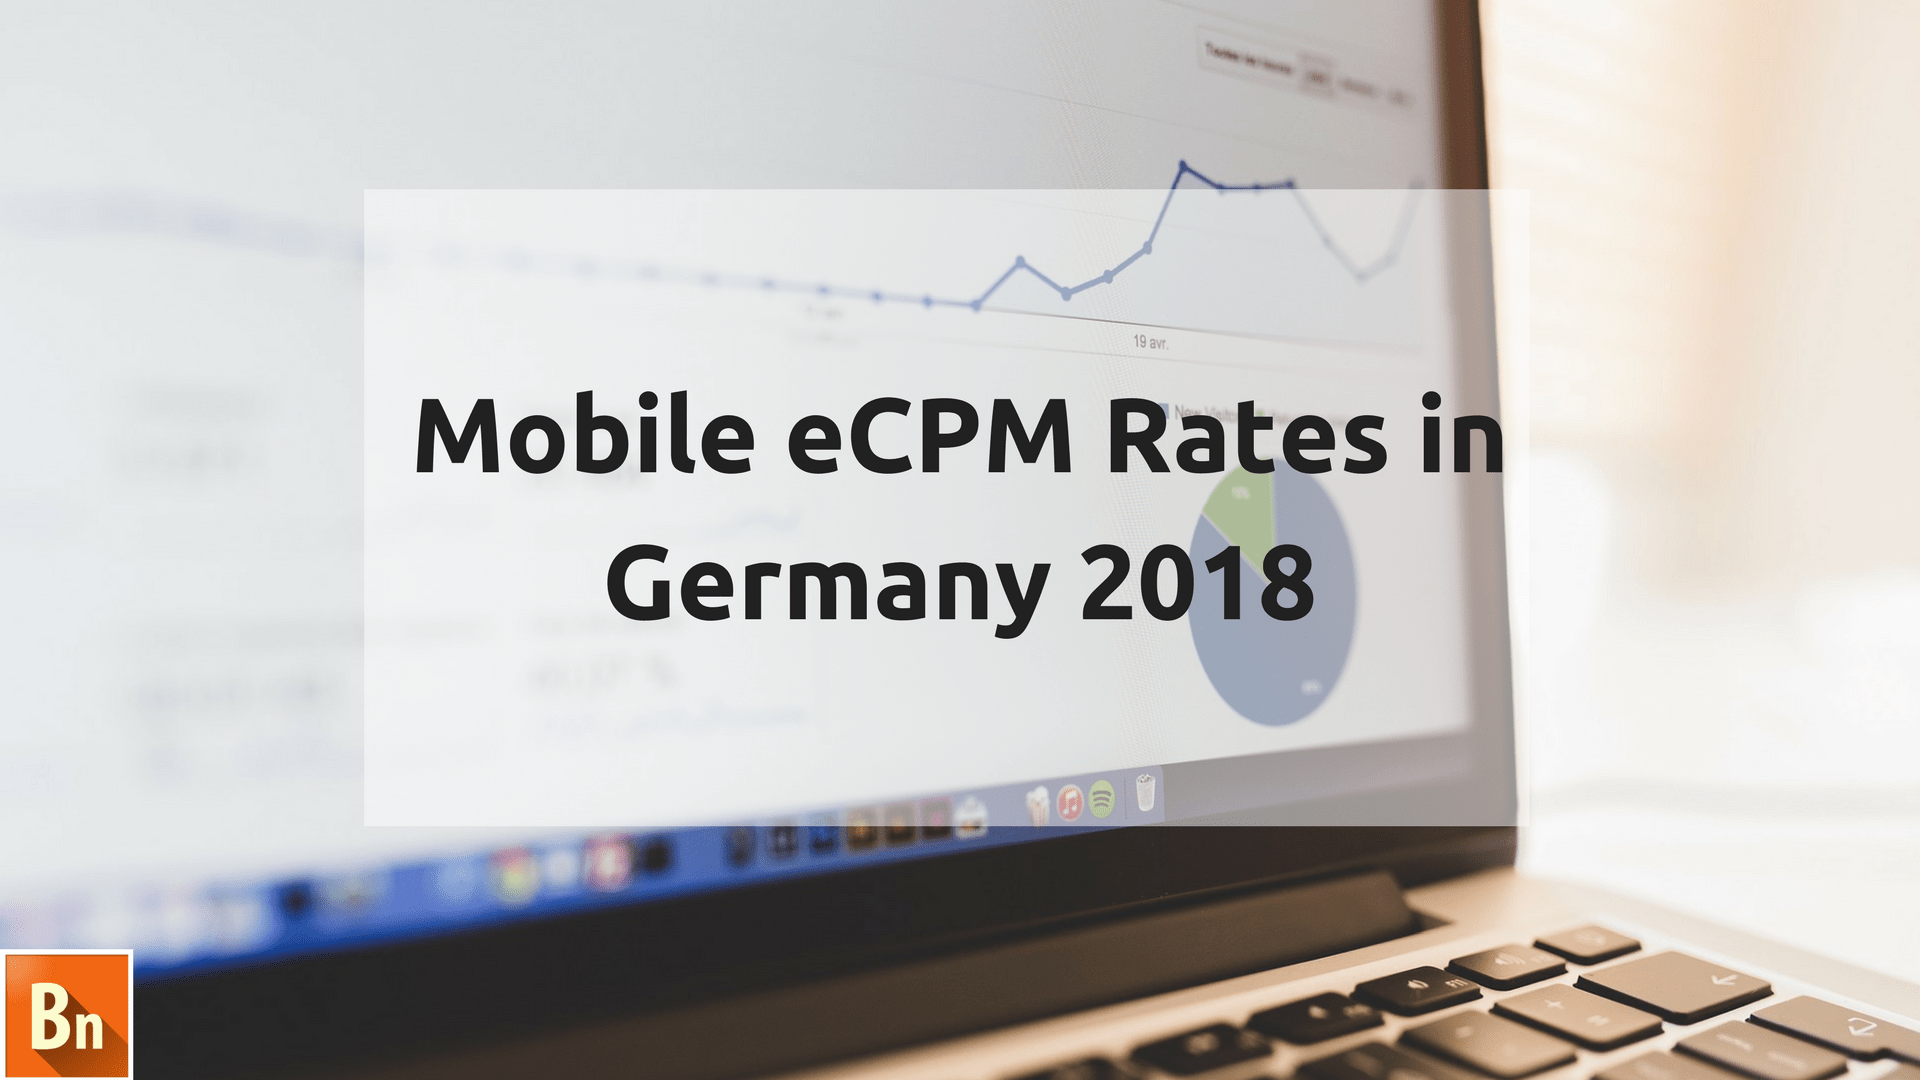 Mobile eCPM Rates in Germany 2018